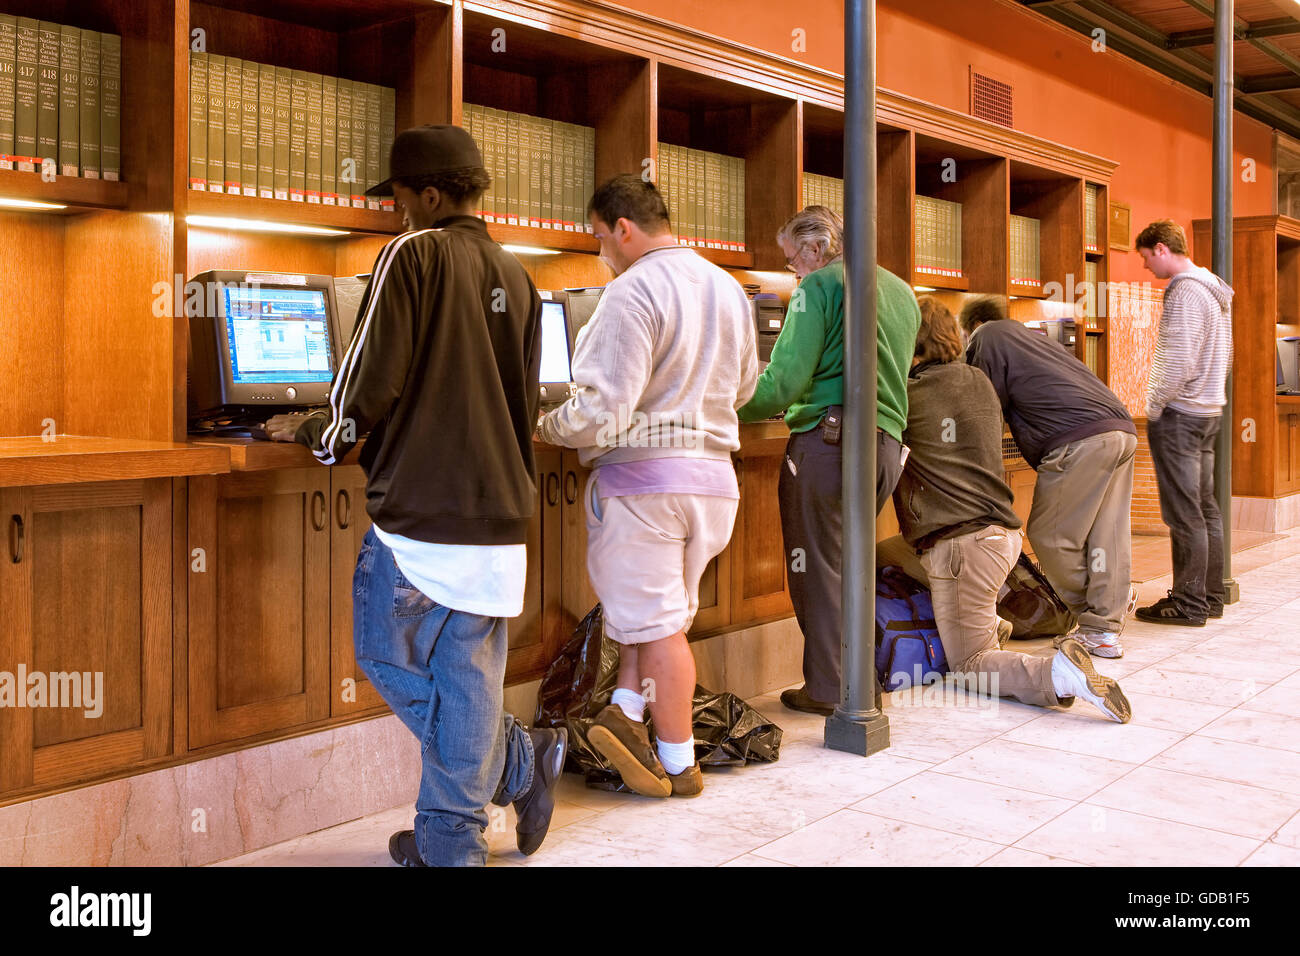 Internet users in the Boston public Library - Stock Image